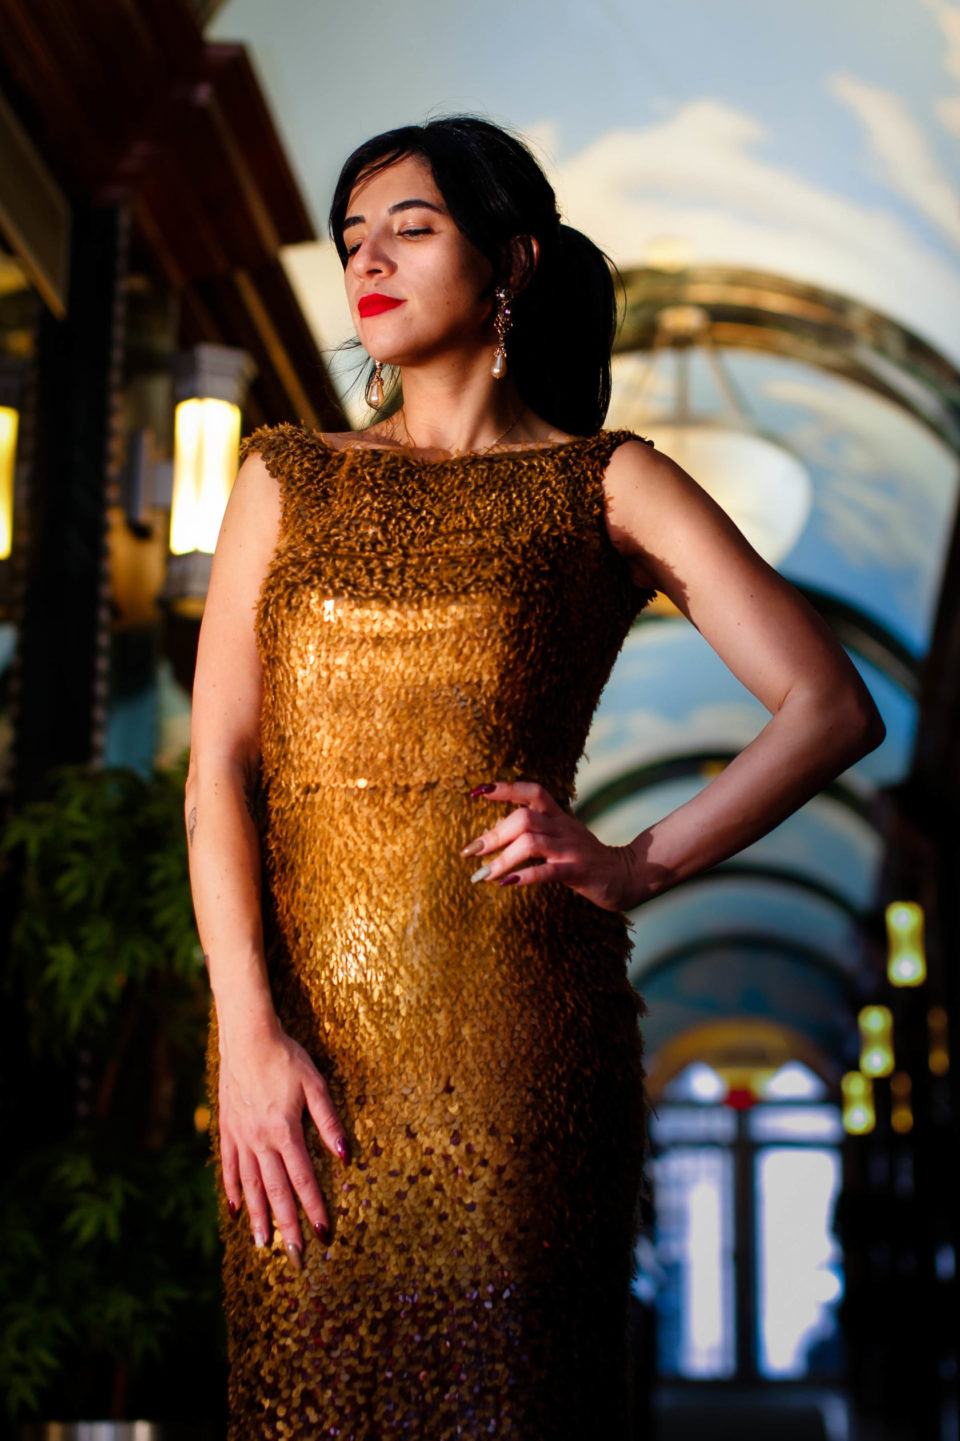 Dress For Success' Cocktails and Couture